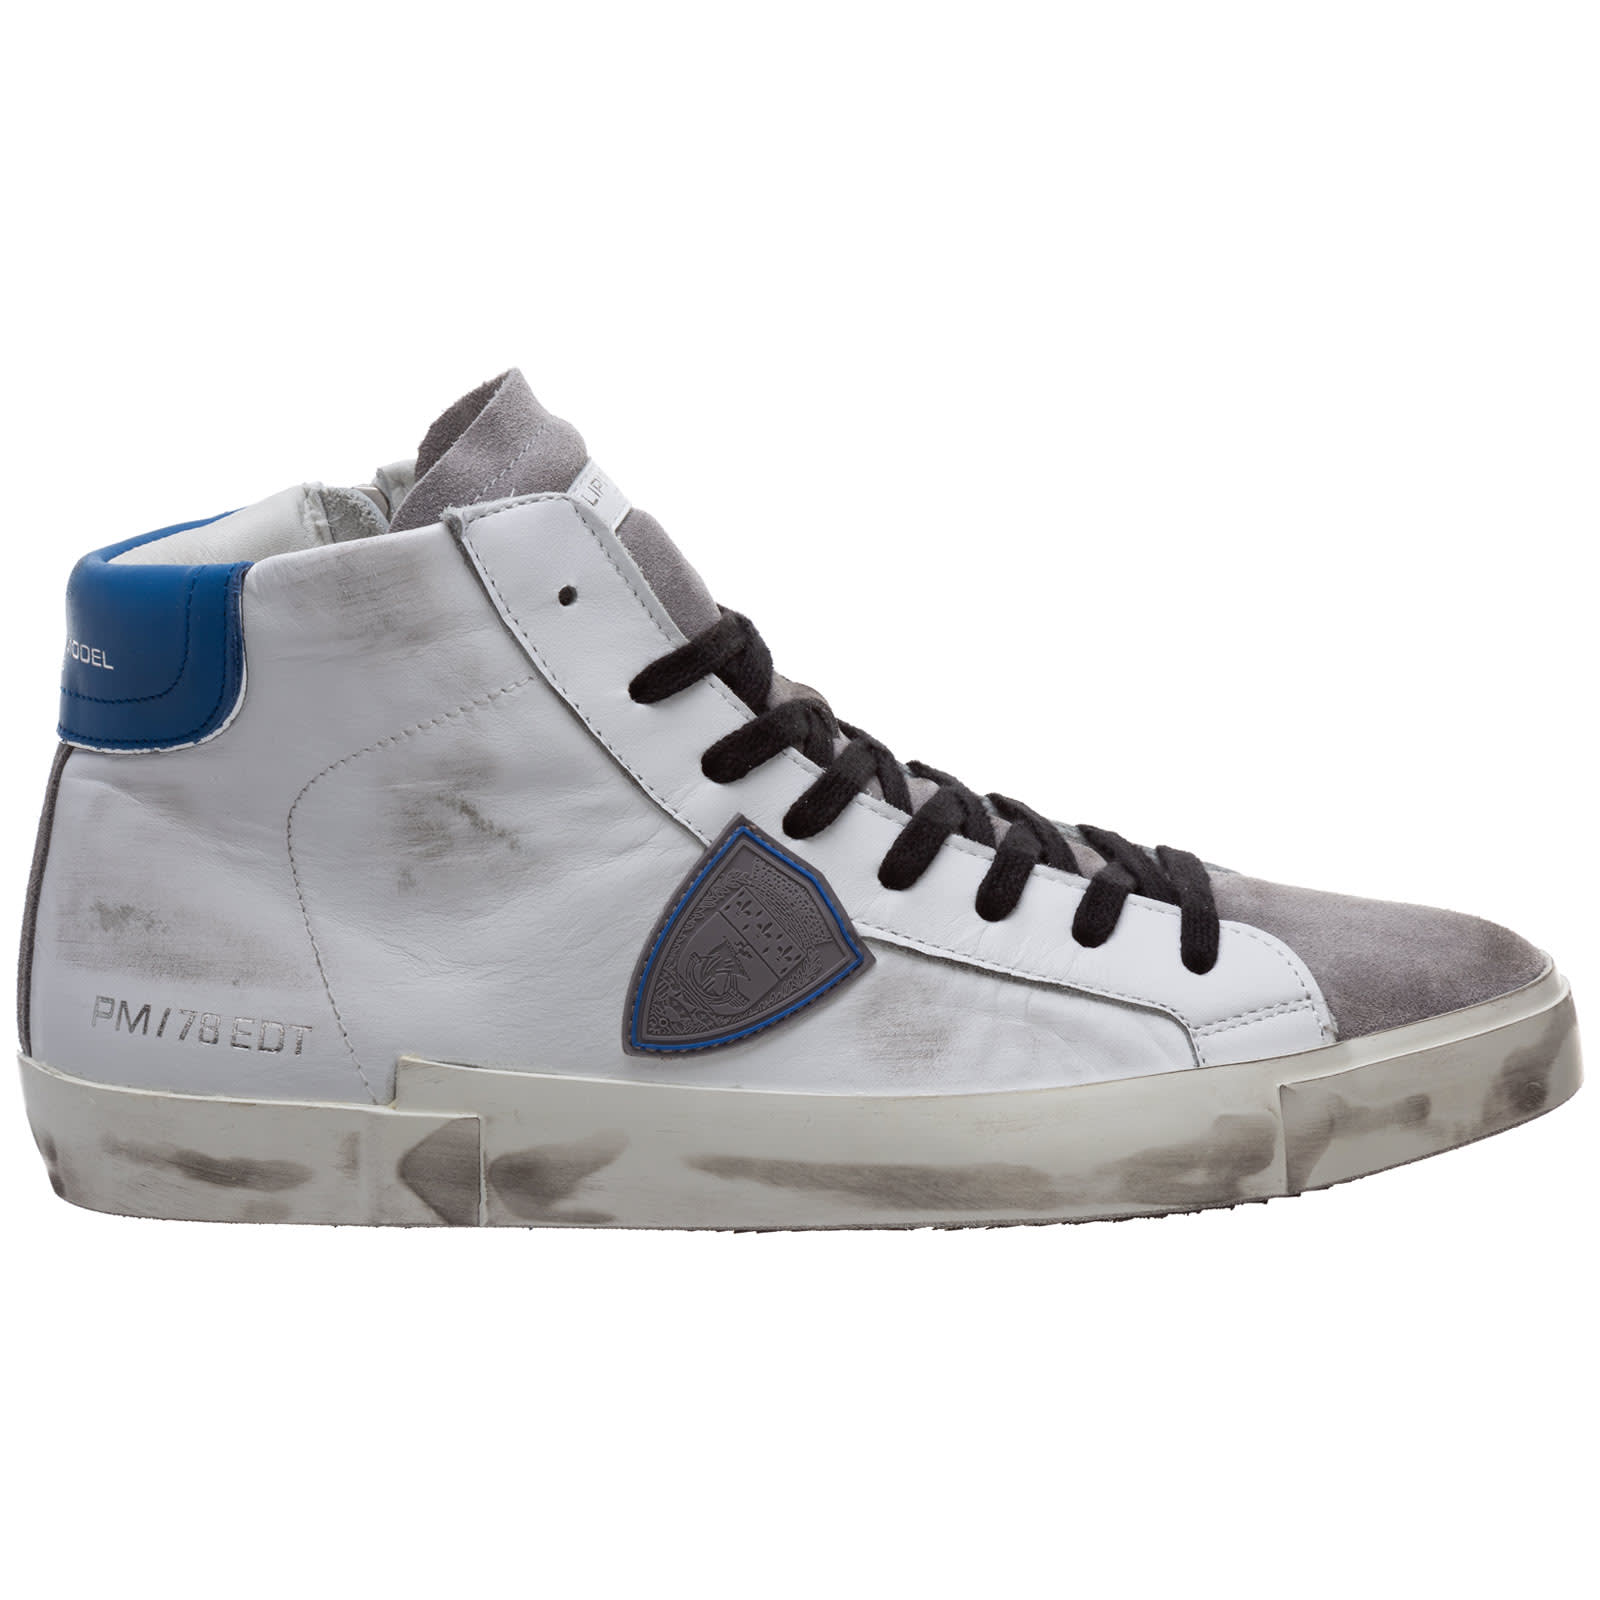 Philippe Model Prsx High-top Sneakers